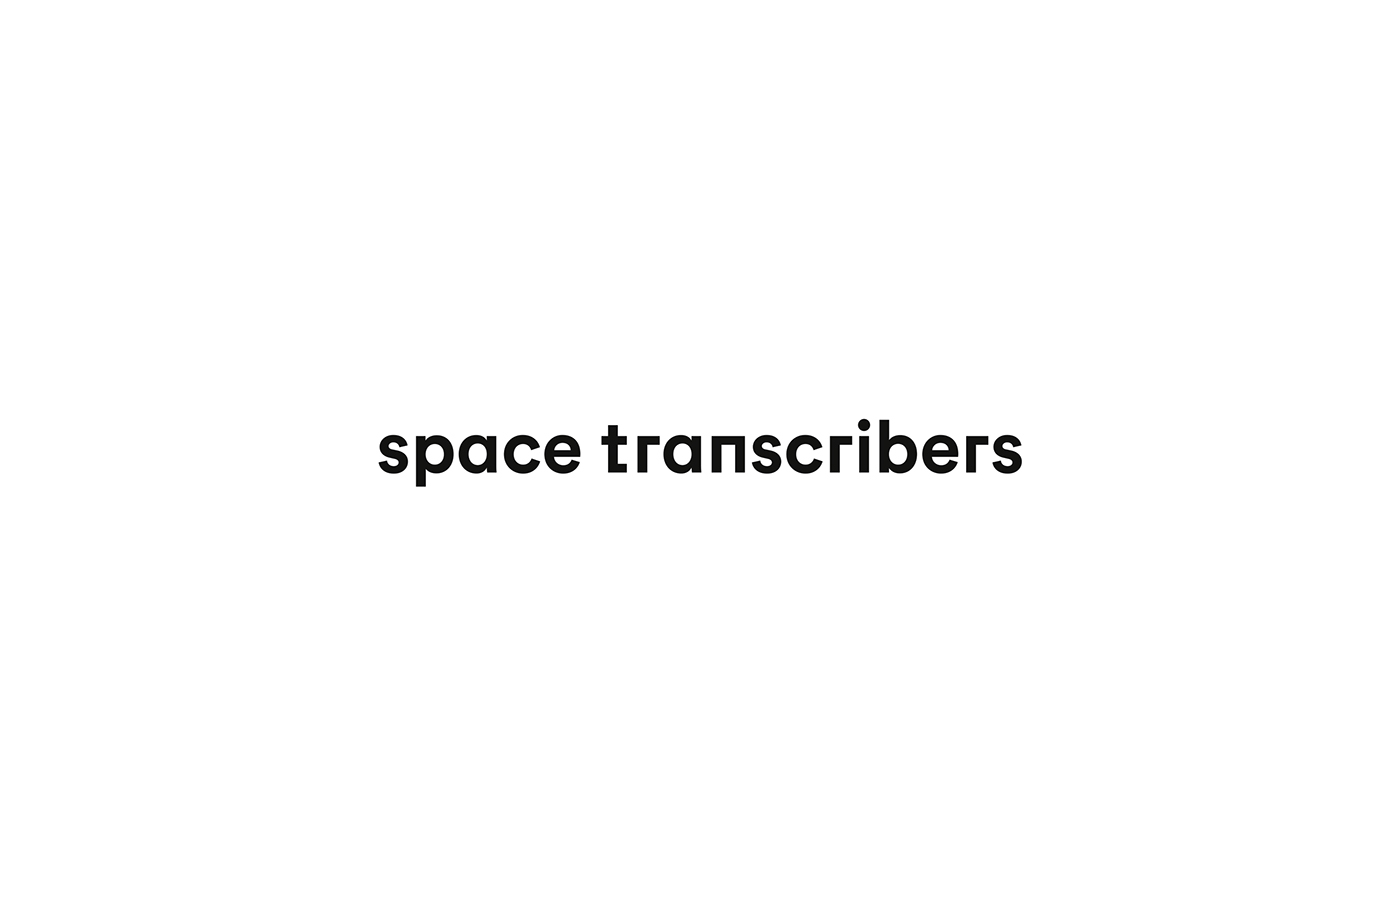 another collective Space Transcribers branding  architecture graphic design  Logotype stationary